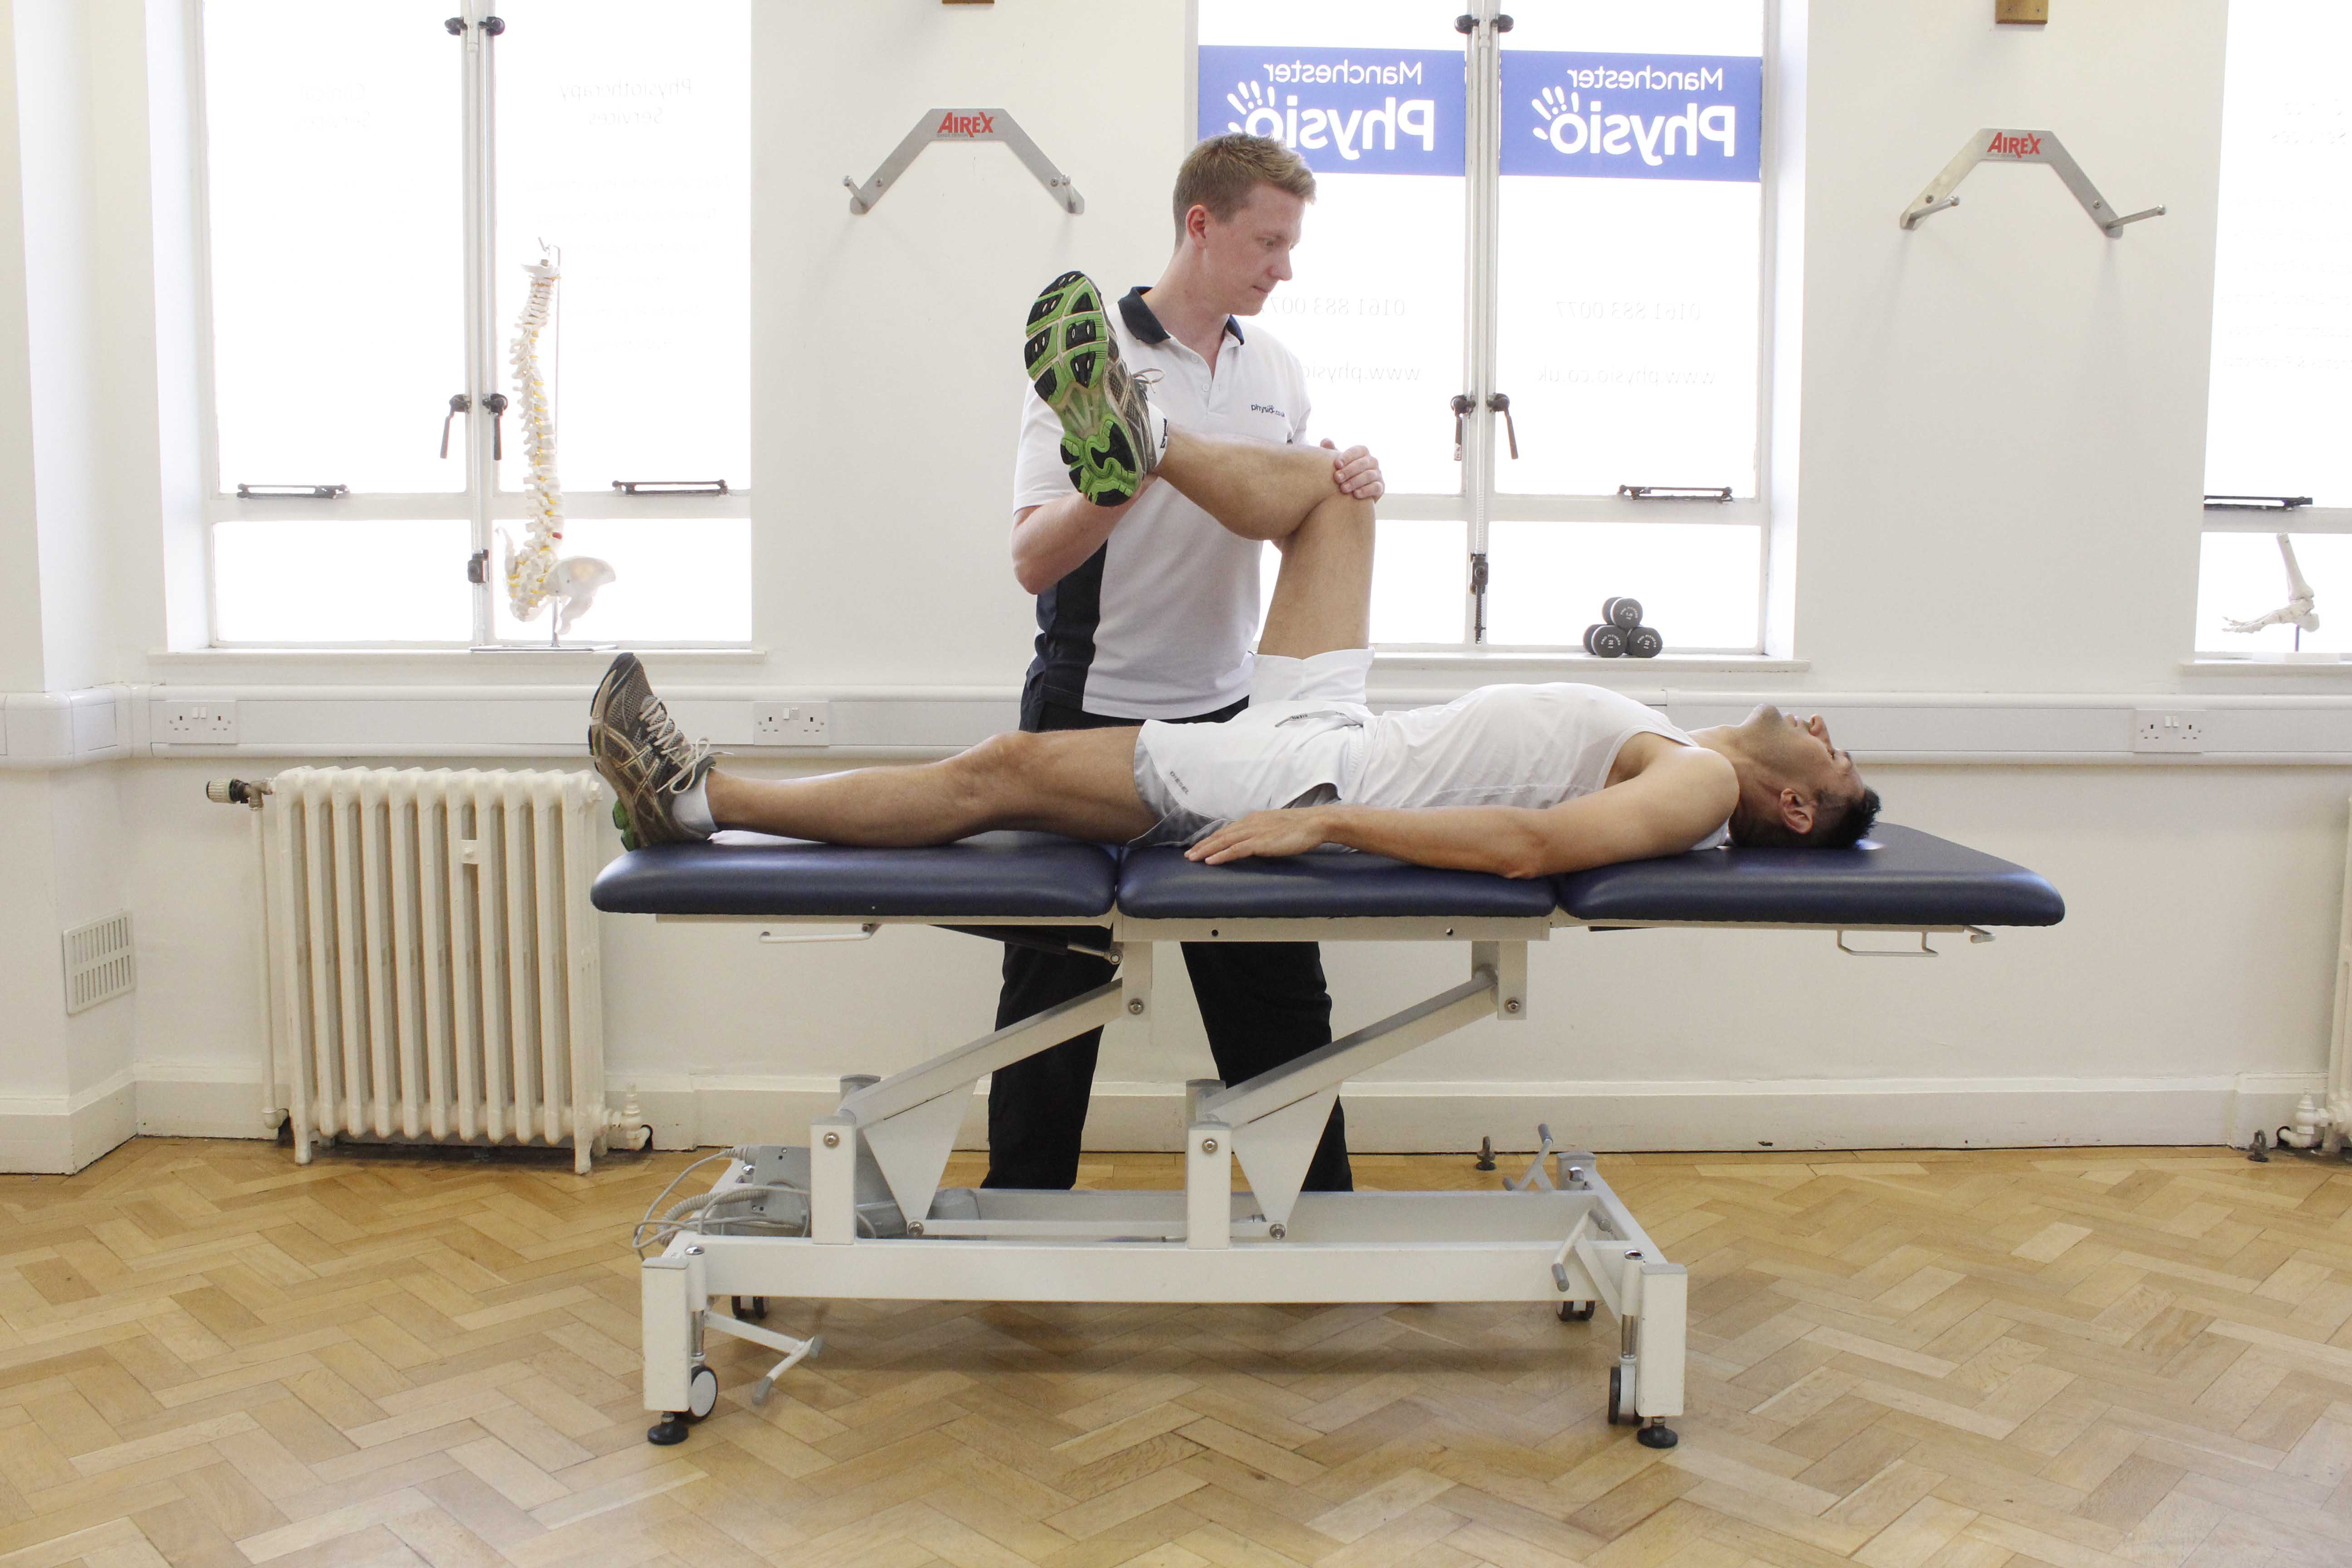 Knee stretches and joint mobilisations performed by an experienced physiotherapist